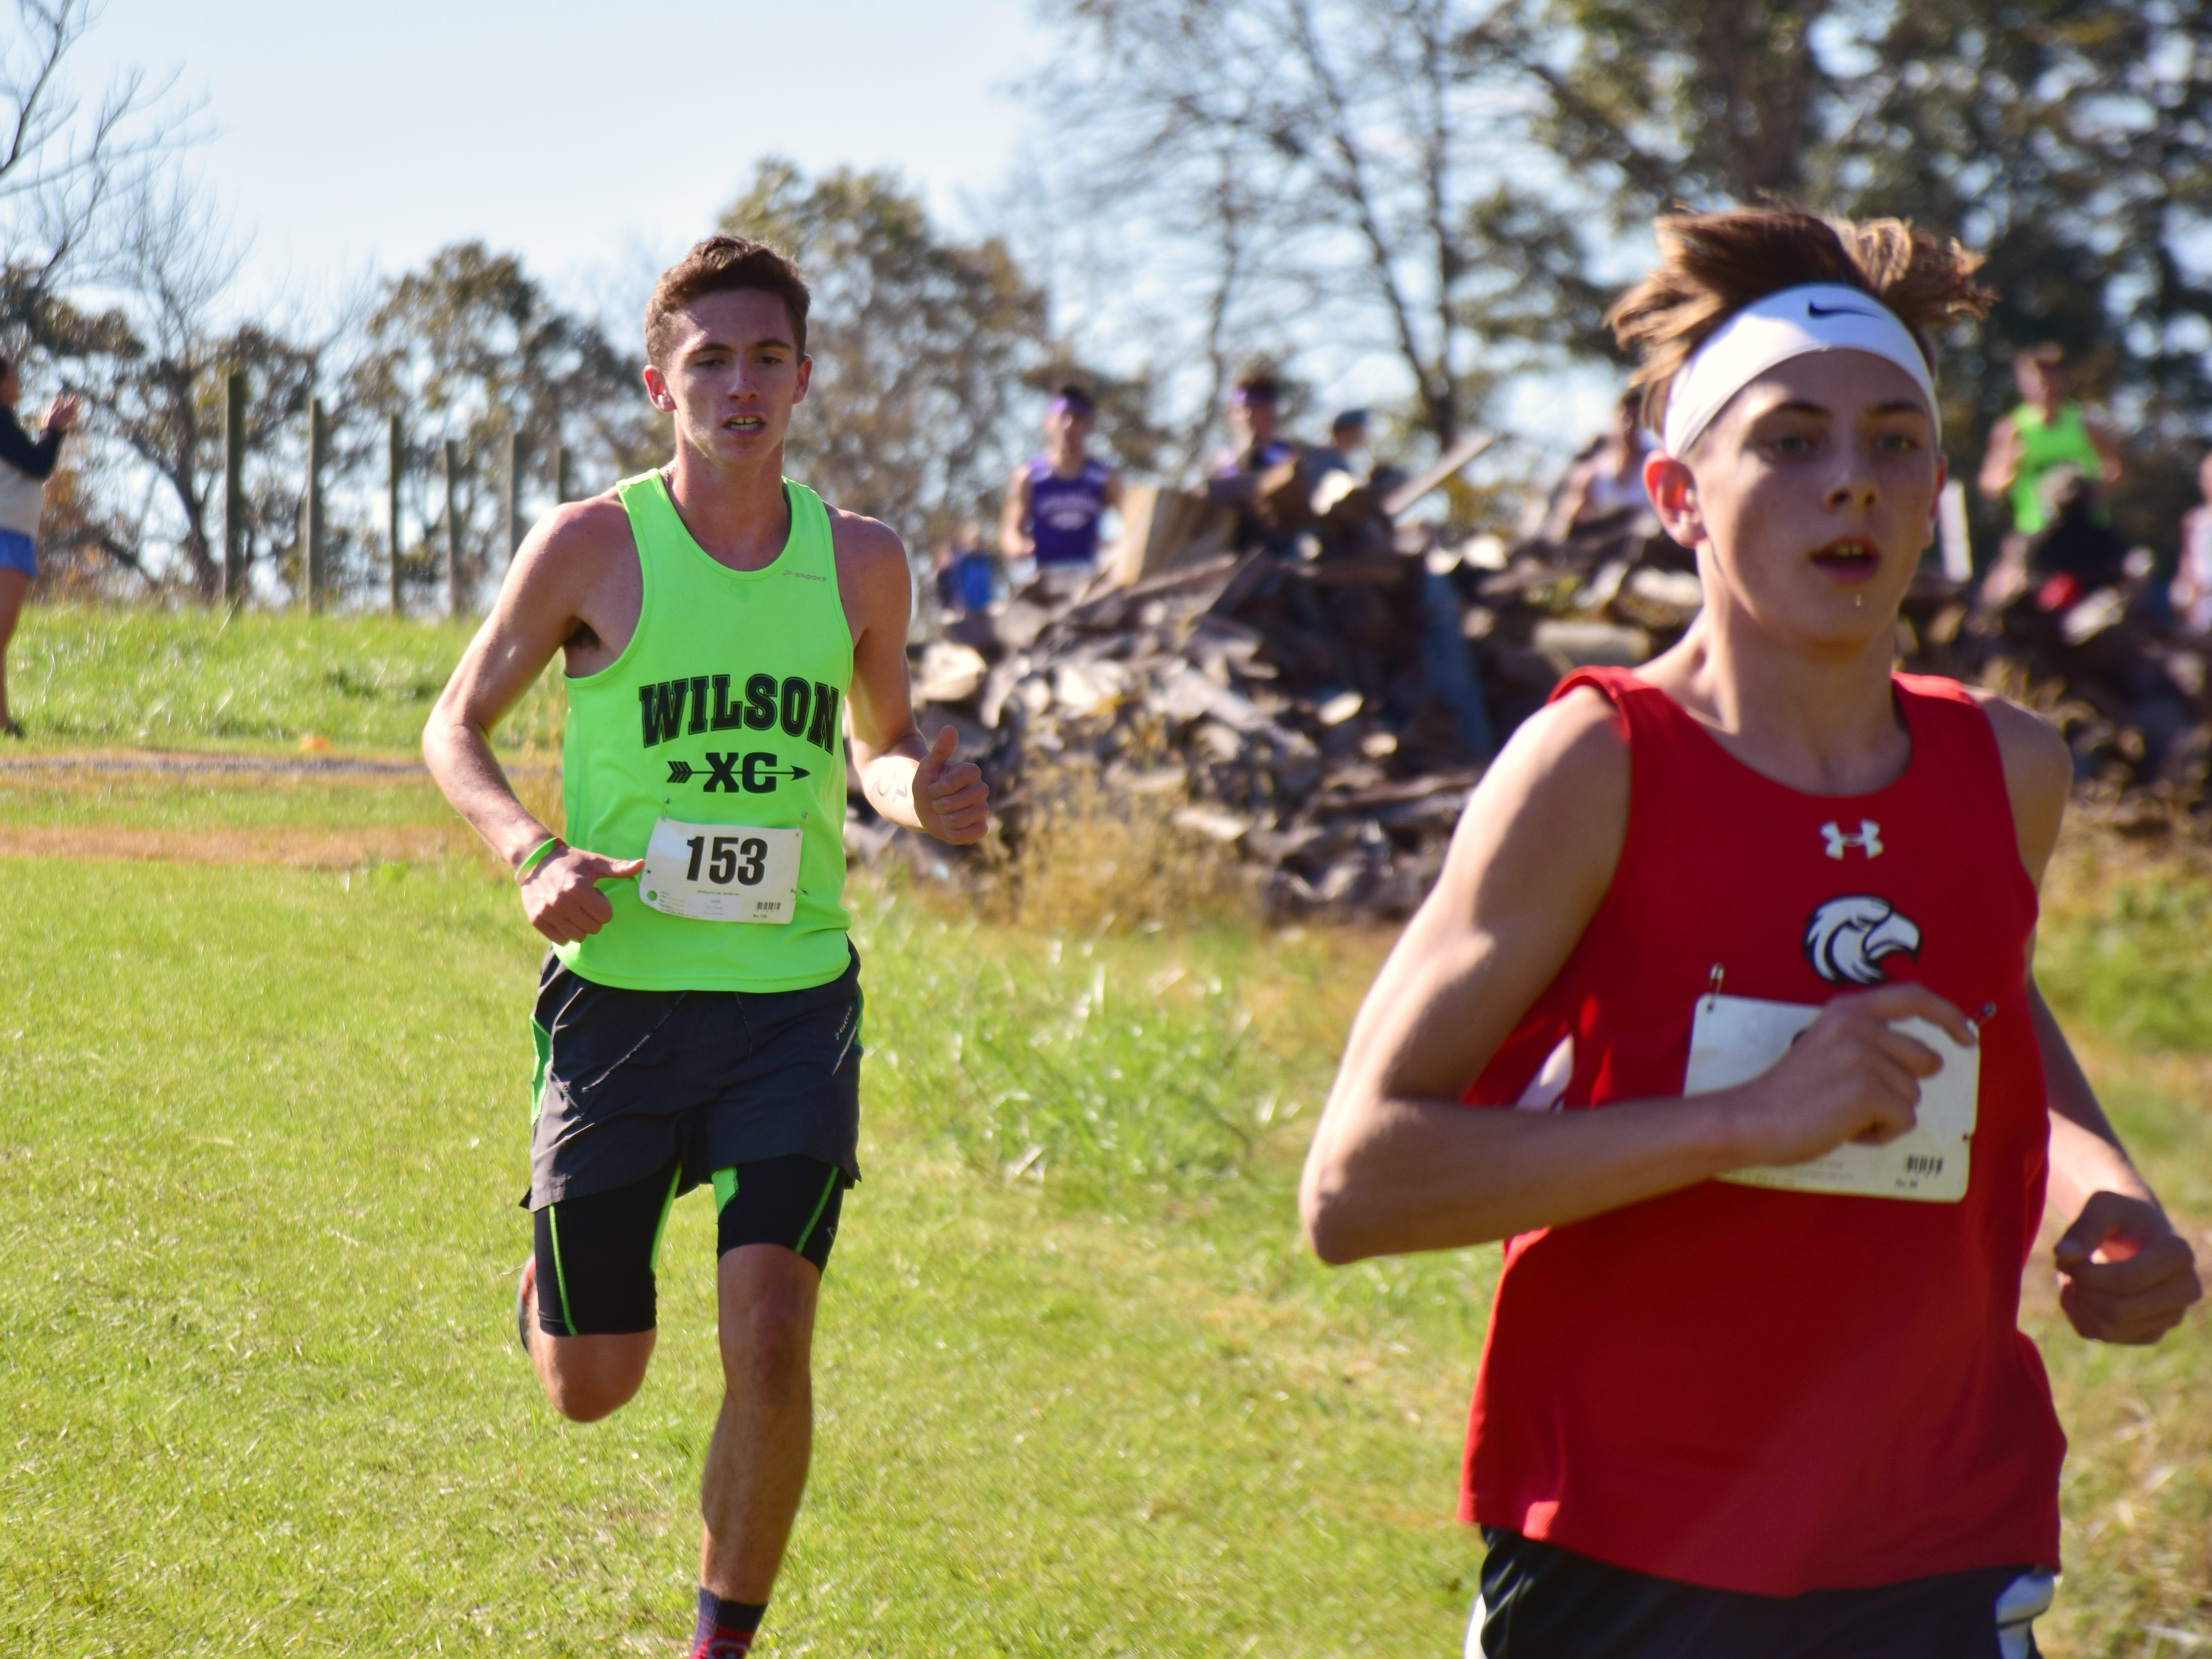 Wilson Memorial's Vincent Leo, left, keeps pace with East Rockingham's George Austin III during the boys race at the VHSL Class 2, Region B Cross Country Championships on Tuesday, Oct. 30, 2018, at New Market Battlefield Park in New Market, Va.